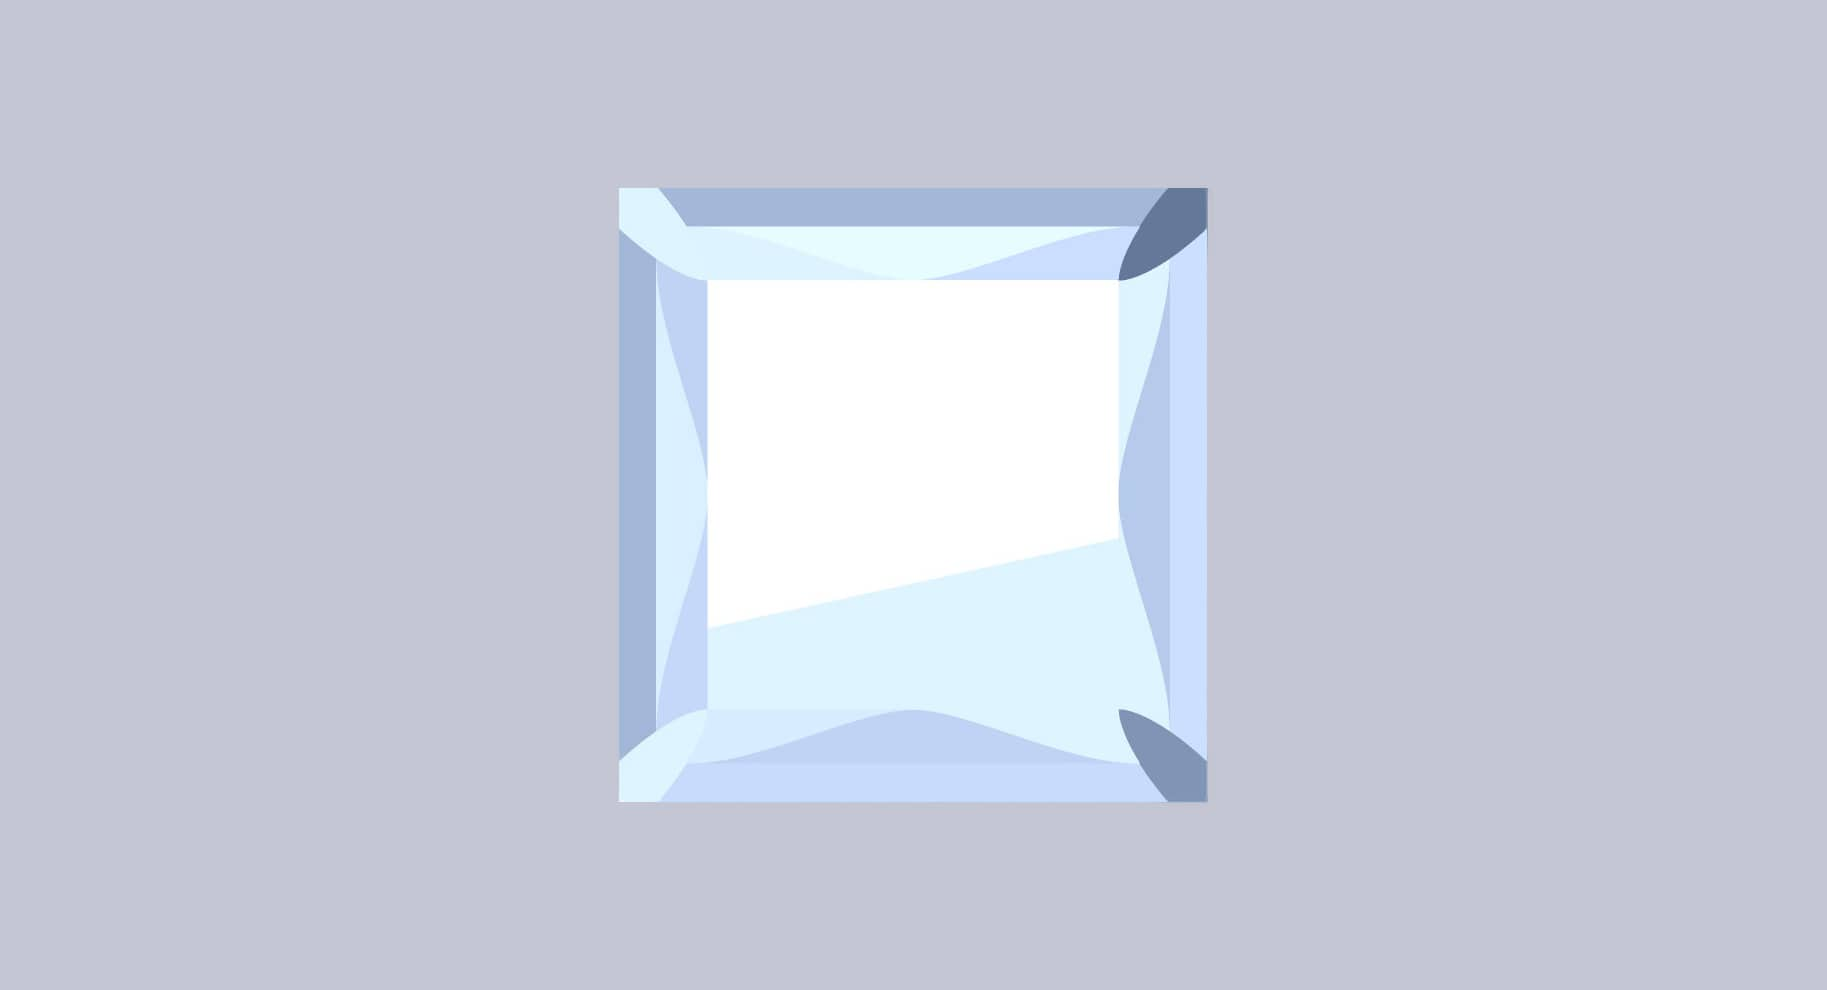 princes cut diamond illustration